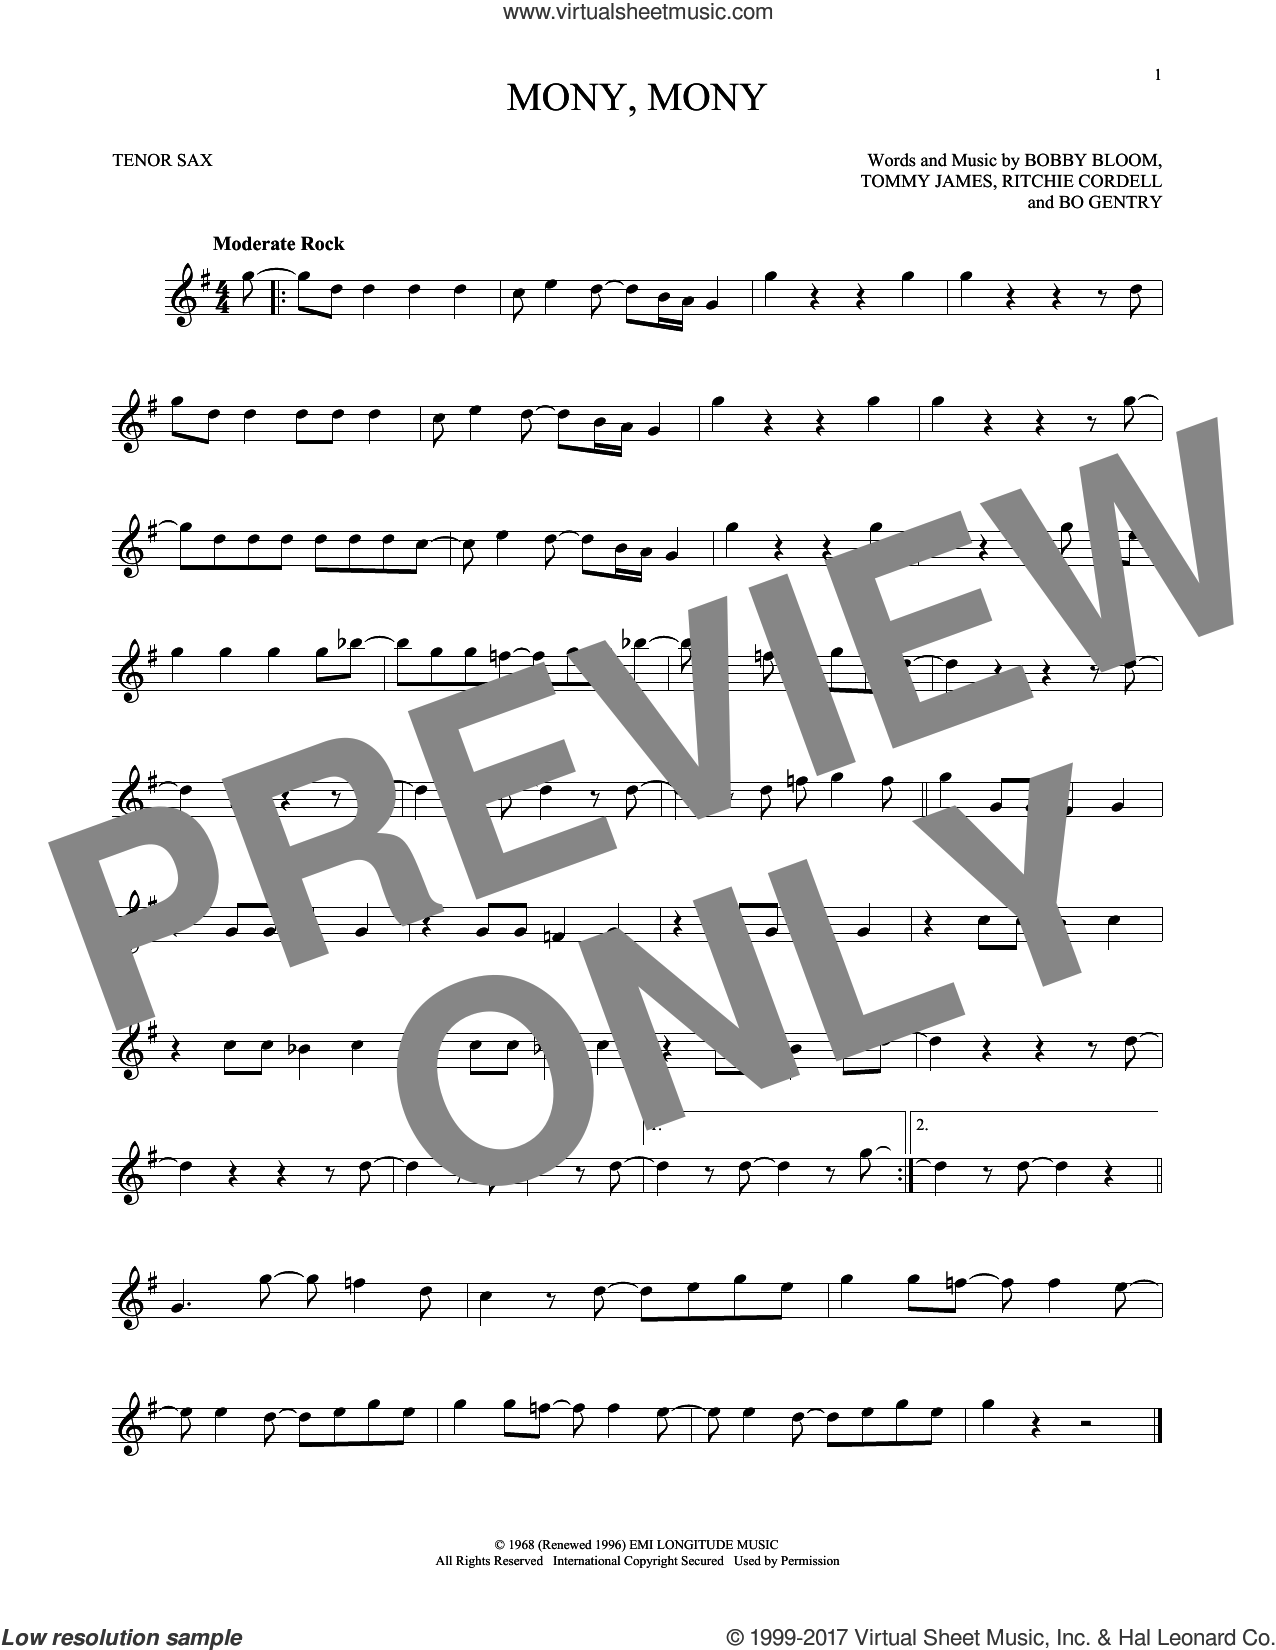 Mony, Mony sheet music for tenor saxophone solo ( Sax) by Tommy James, Billy Idol, Tommy James & The Shondells and Ritchie Cordell. Score Image Preview.